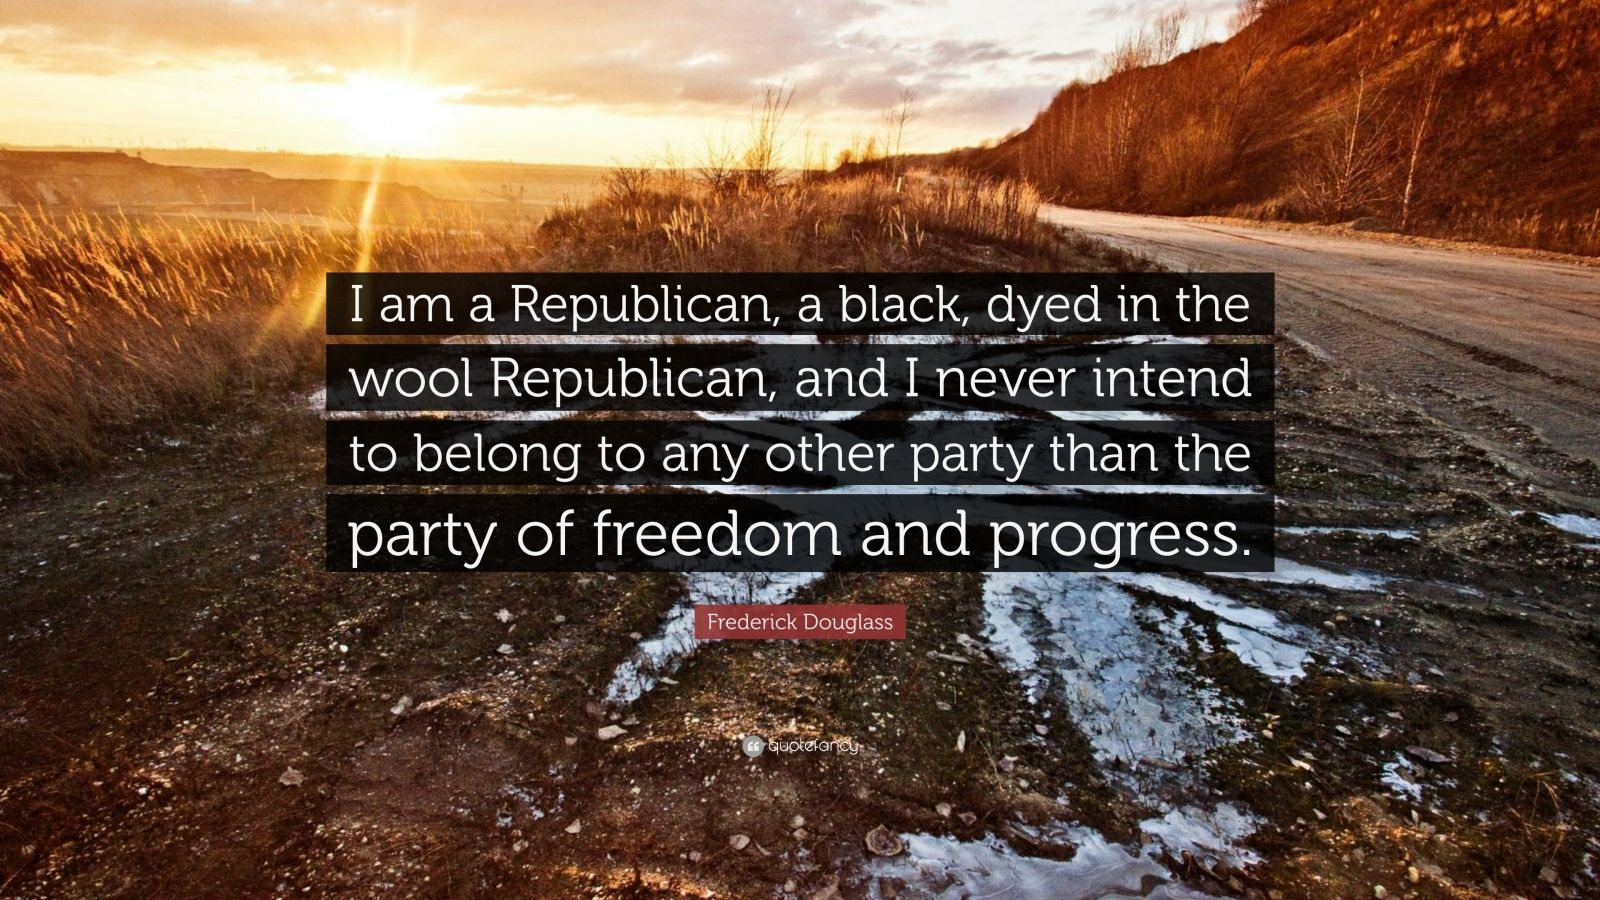 "Frederick Douglass Quote: ""I am a Republican, a black, dyed in the wool Republican, and I never intend to belong to any other party than the party of freedom and progress."""